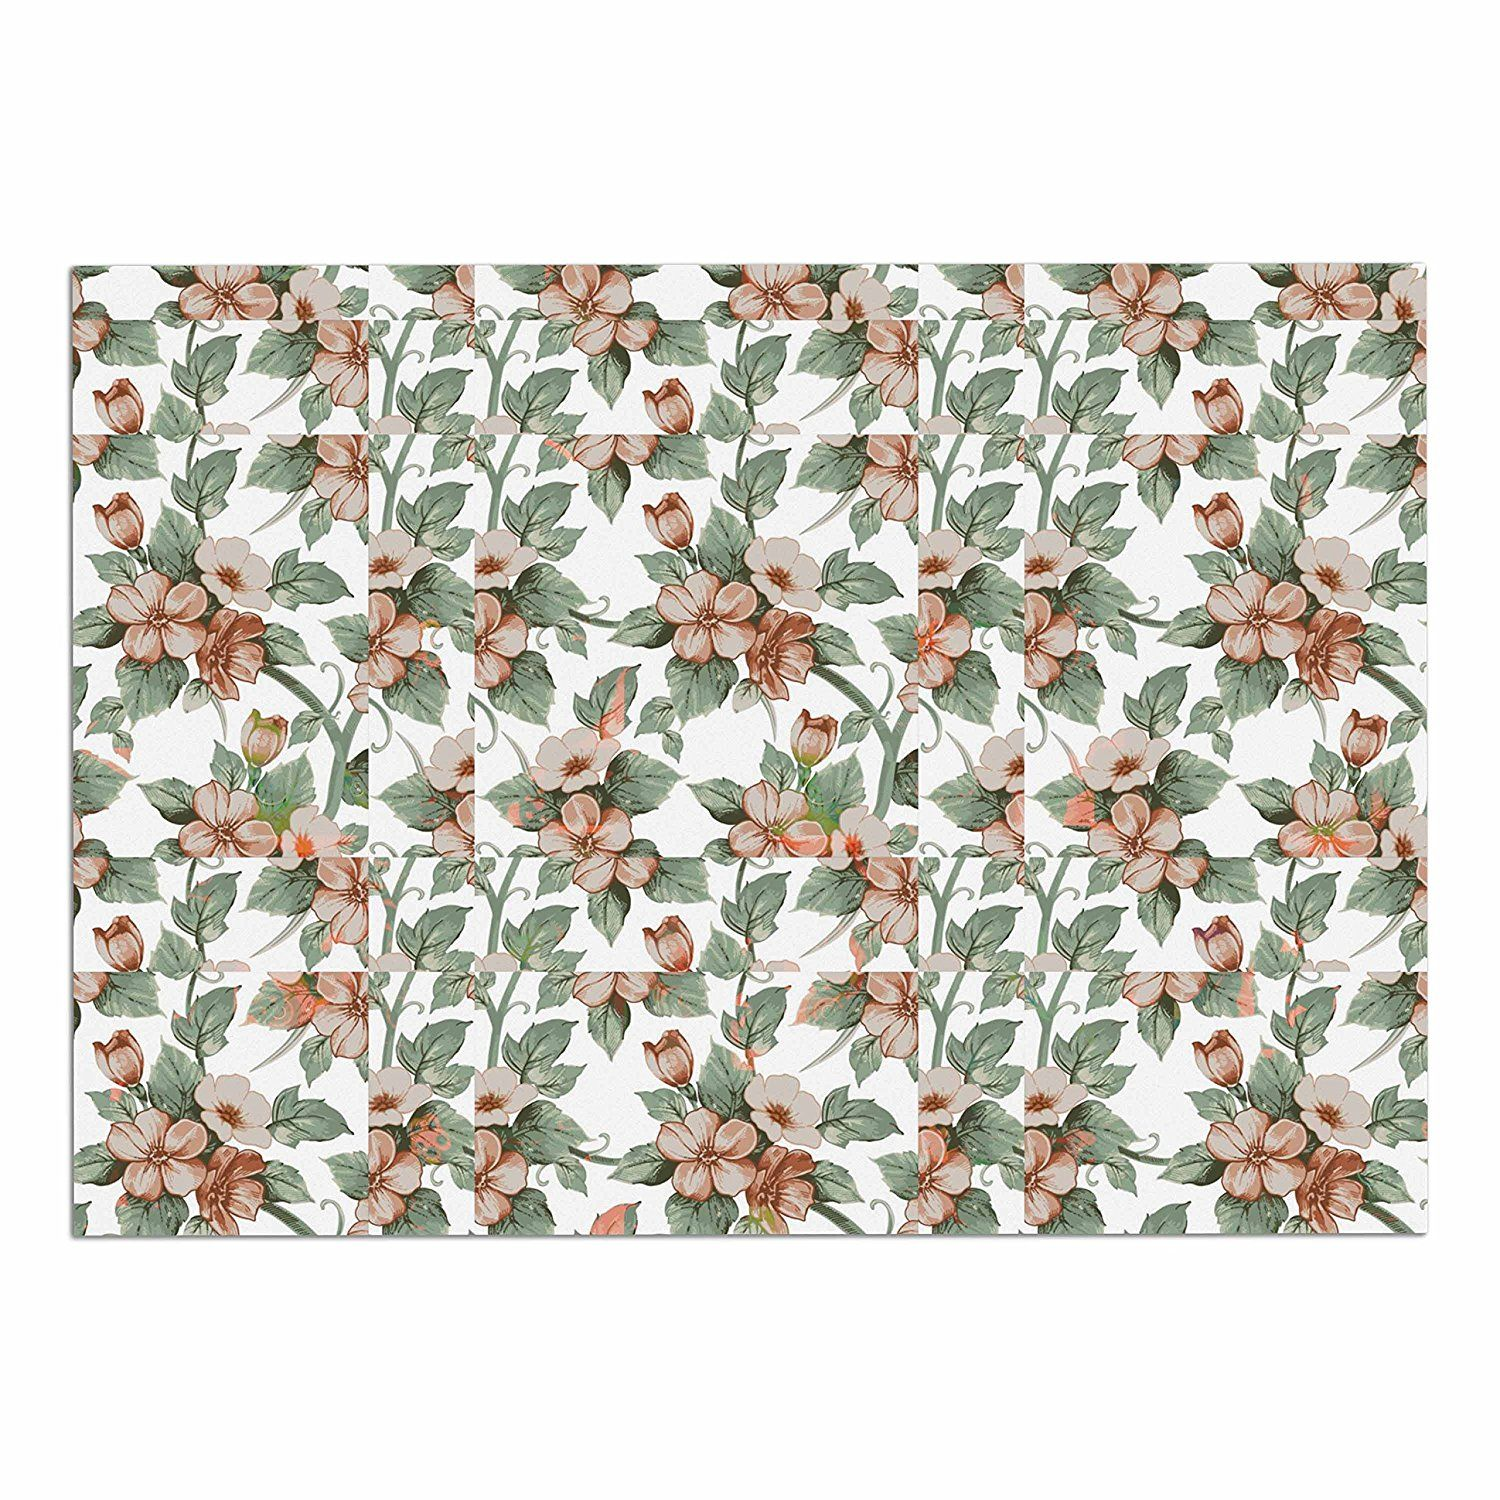 KESS InHouse Suzanne Carter 'Vintage Flowers' Green Floral Dog Place Mat, 13' x 18' *** Remarkable product available now. : Dog food container